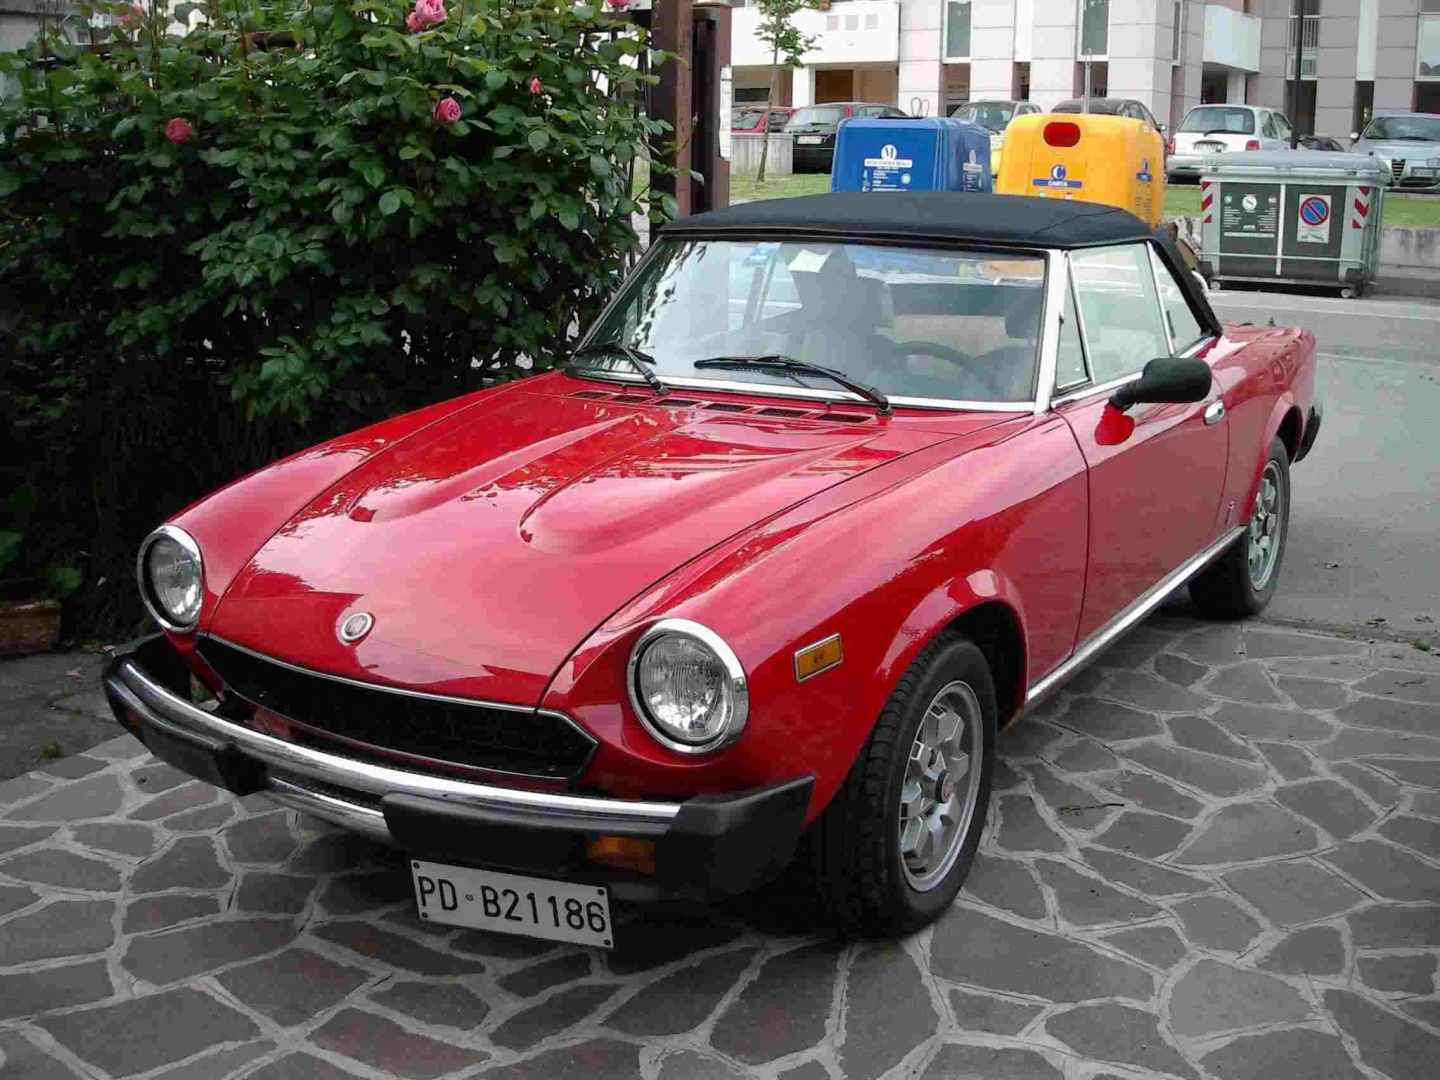 FIAT 124 spider d'epoca - Automobile.it